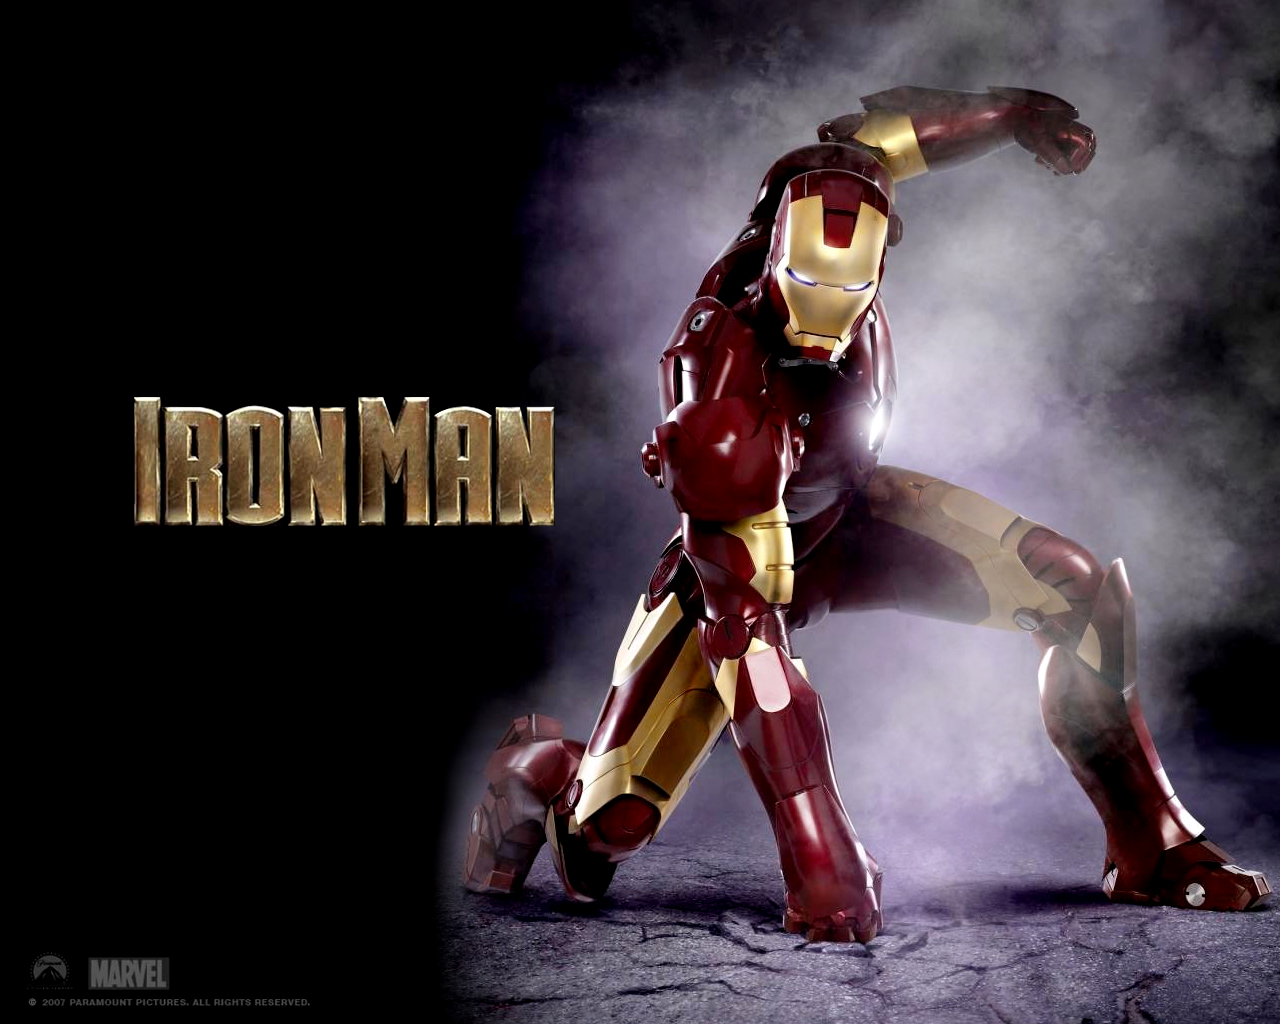 Also available: the IRON MAN the junior novel adaptation written by